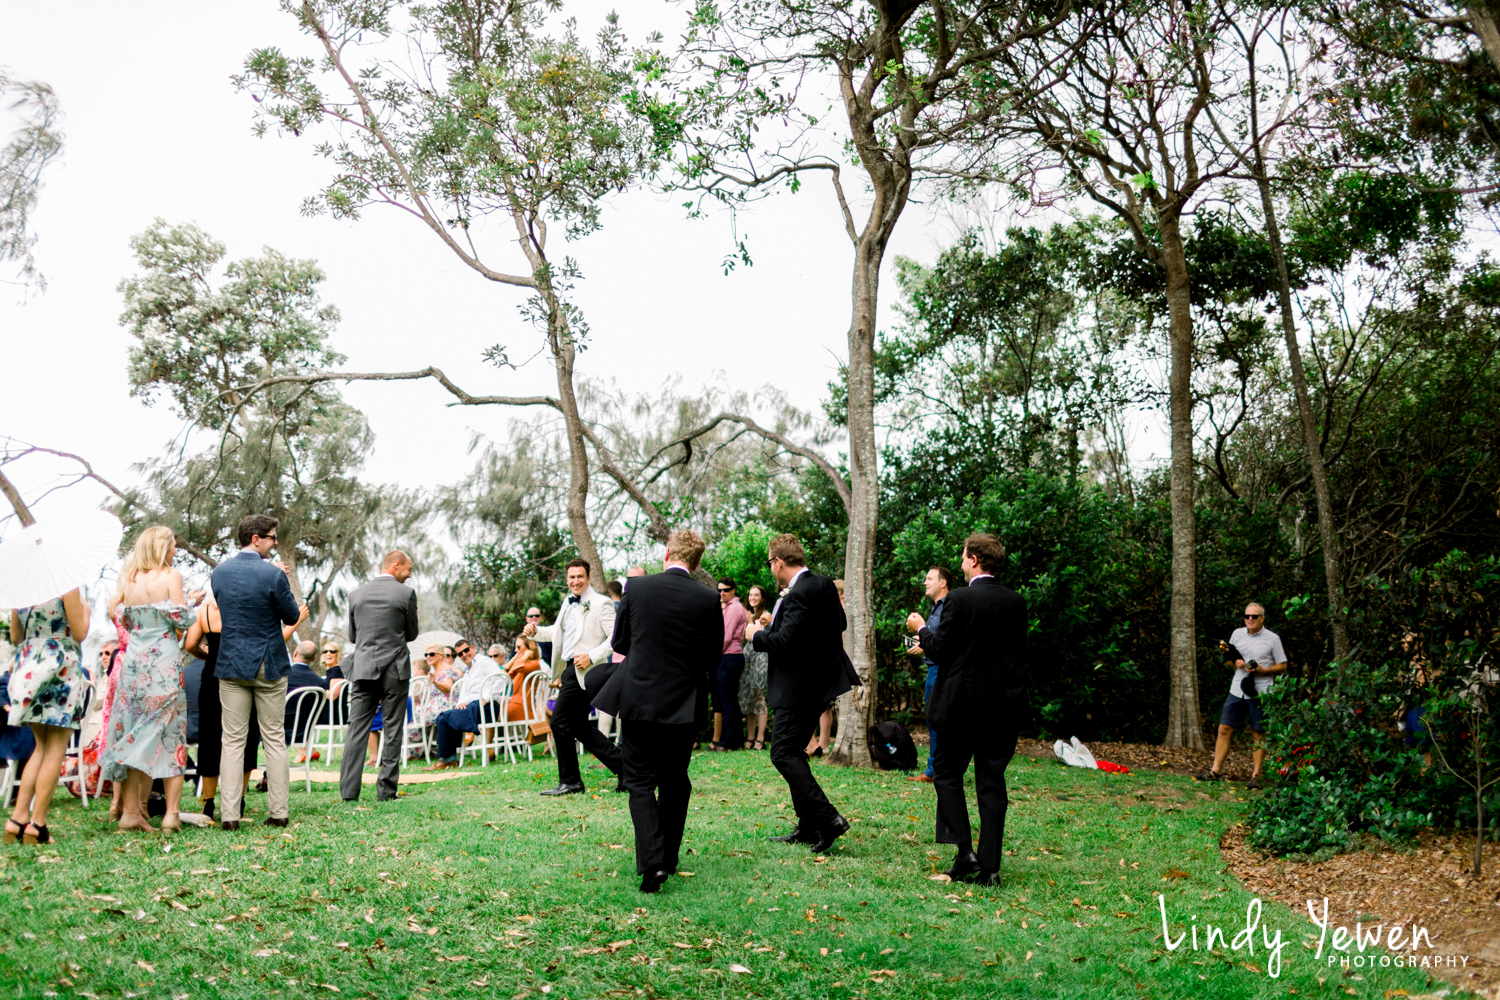 Noosa-Weddings-Amelia-Michael 43.jpg